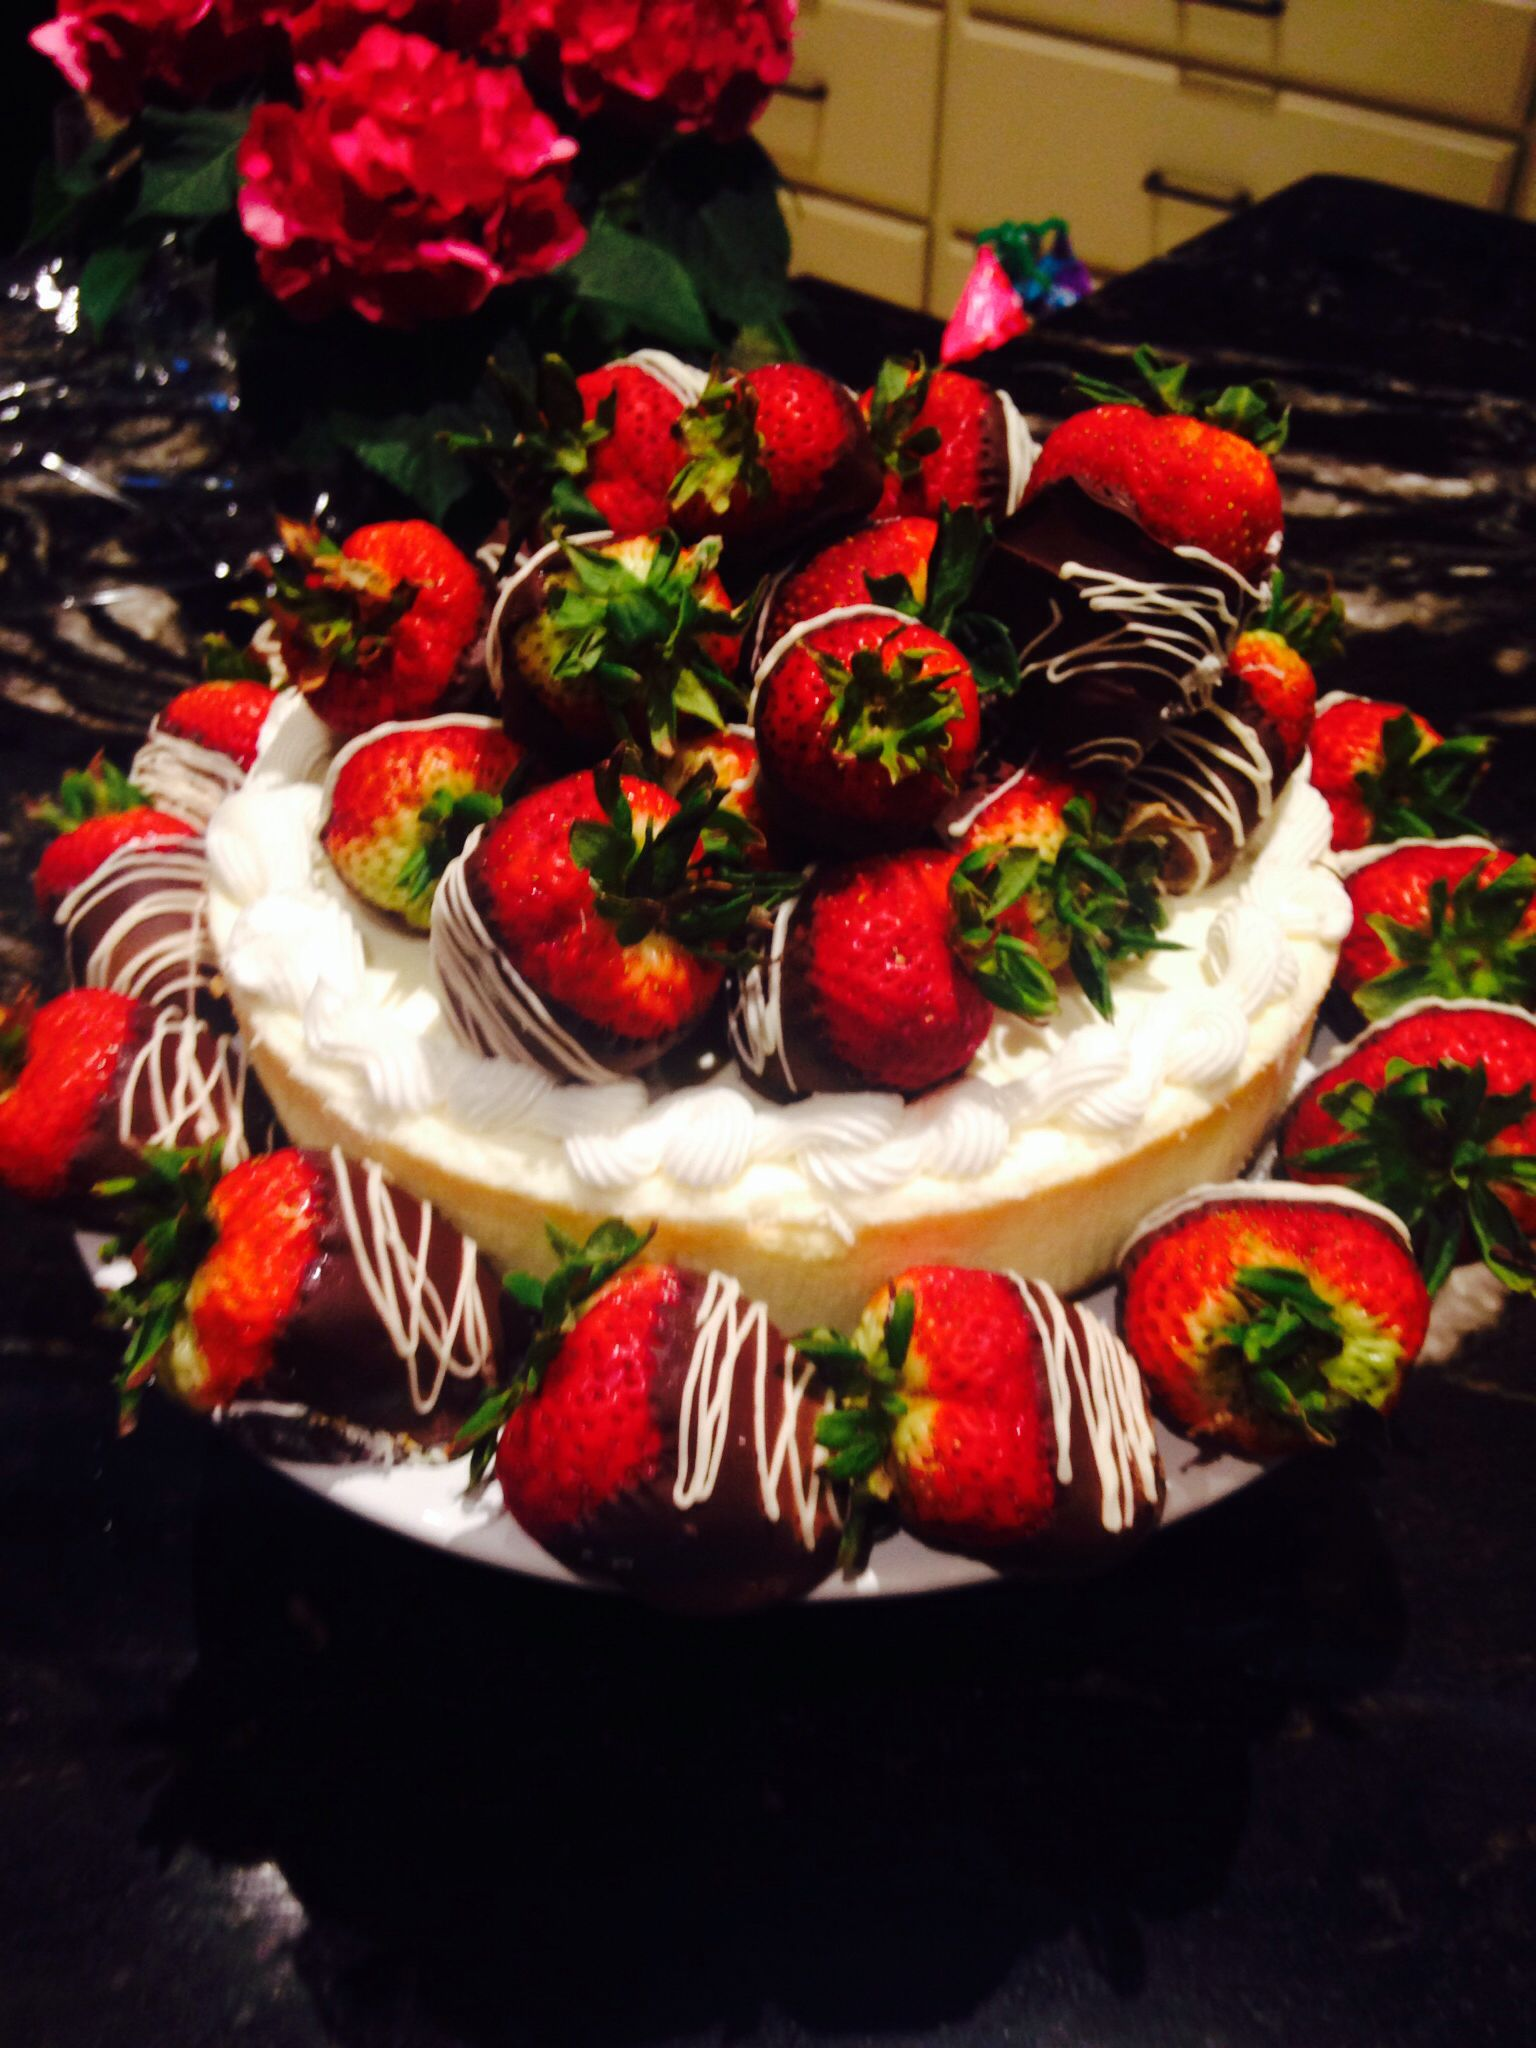 Great Mother's Day dessert get a plain cheesecake and make some chocolate covered strawberries